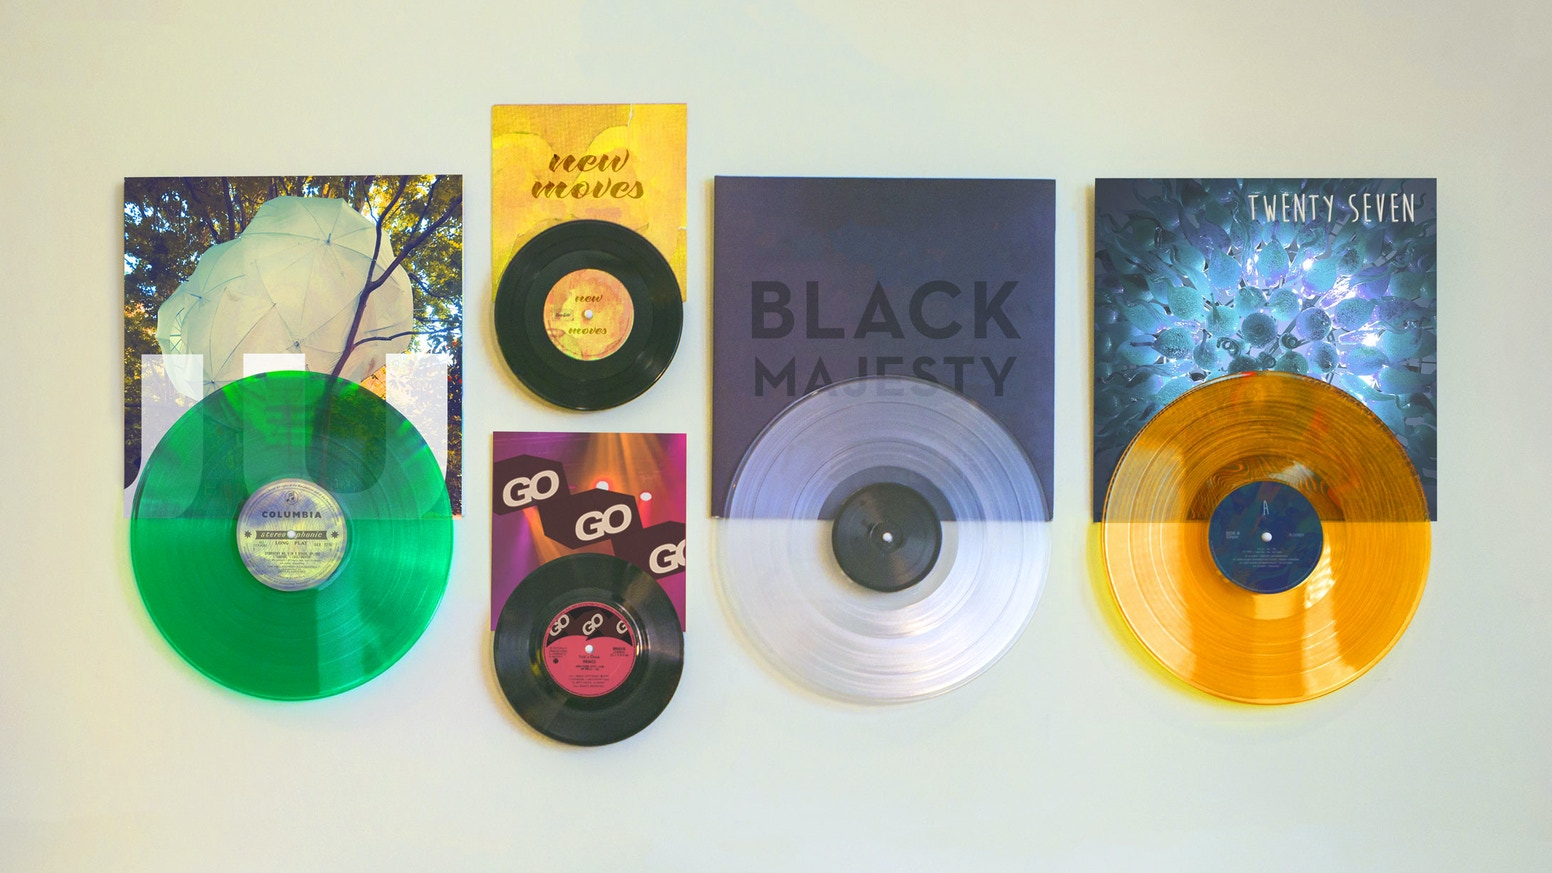 Display vinyl records in style, see what's now playing and share your favorite albums with friends. Record Props make it easy to give props to the artists you love and admire.